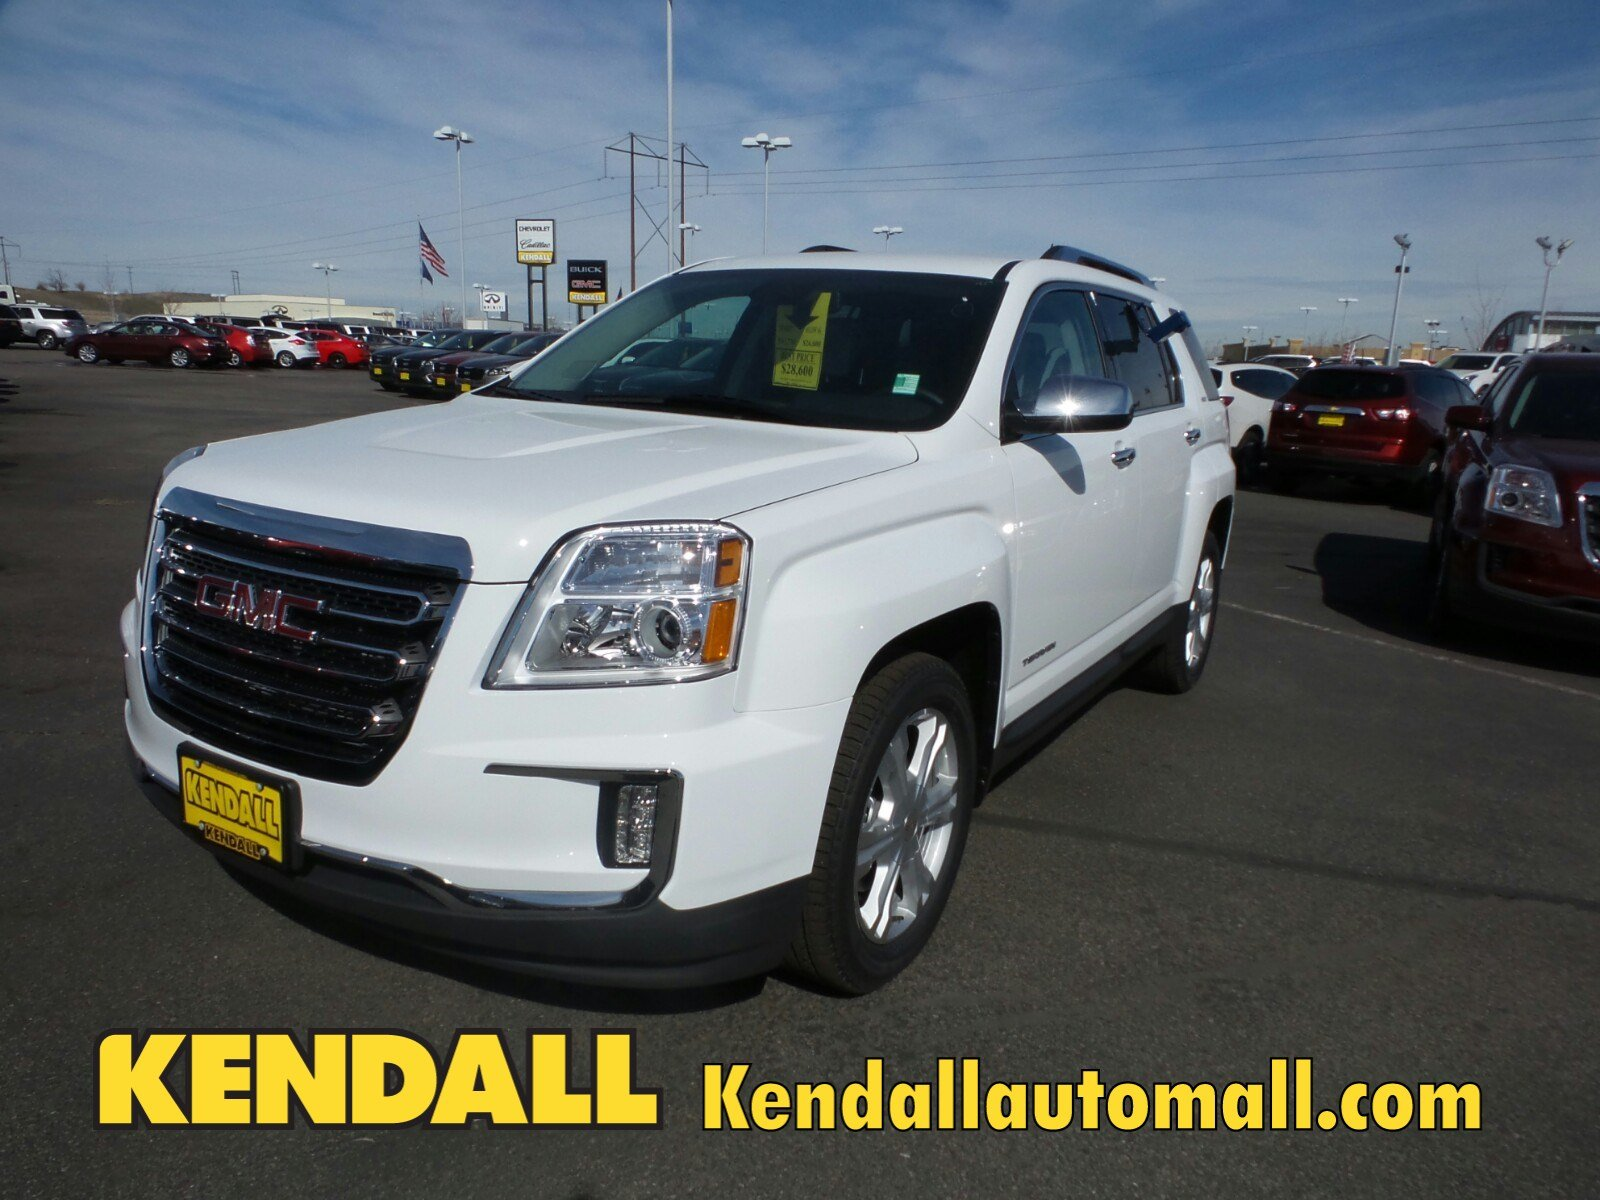 new 2017 gmc terrain slt awd in nampa 470524 kendall at the idaho center auto mall. Black Bedroom Furniture Sets. Home Design Ideas